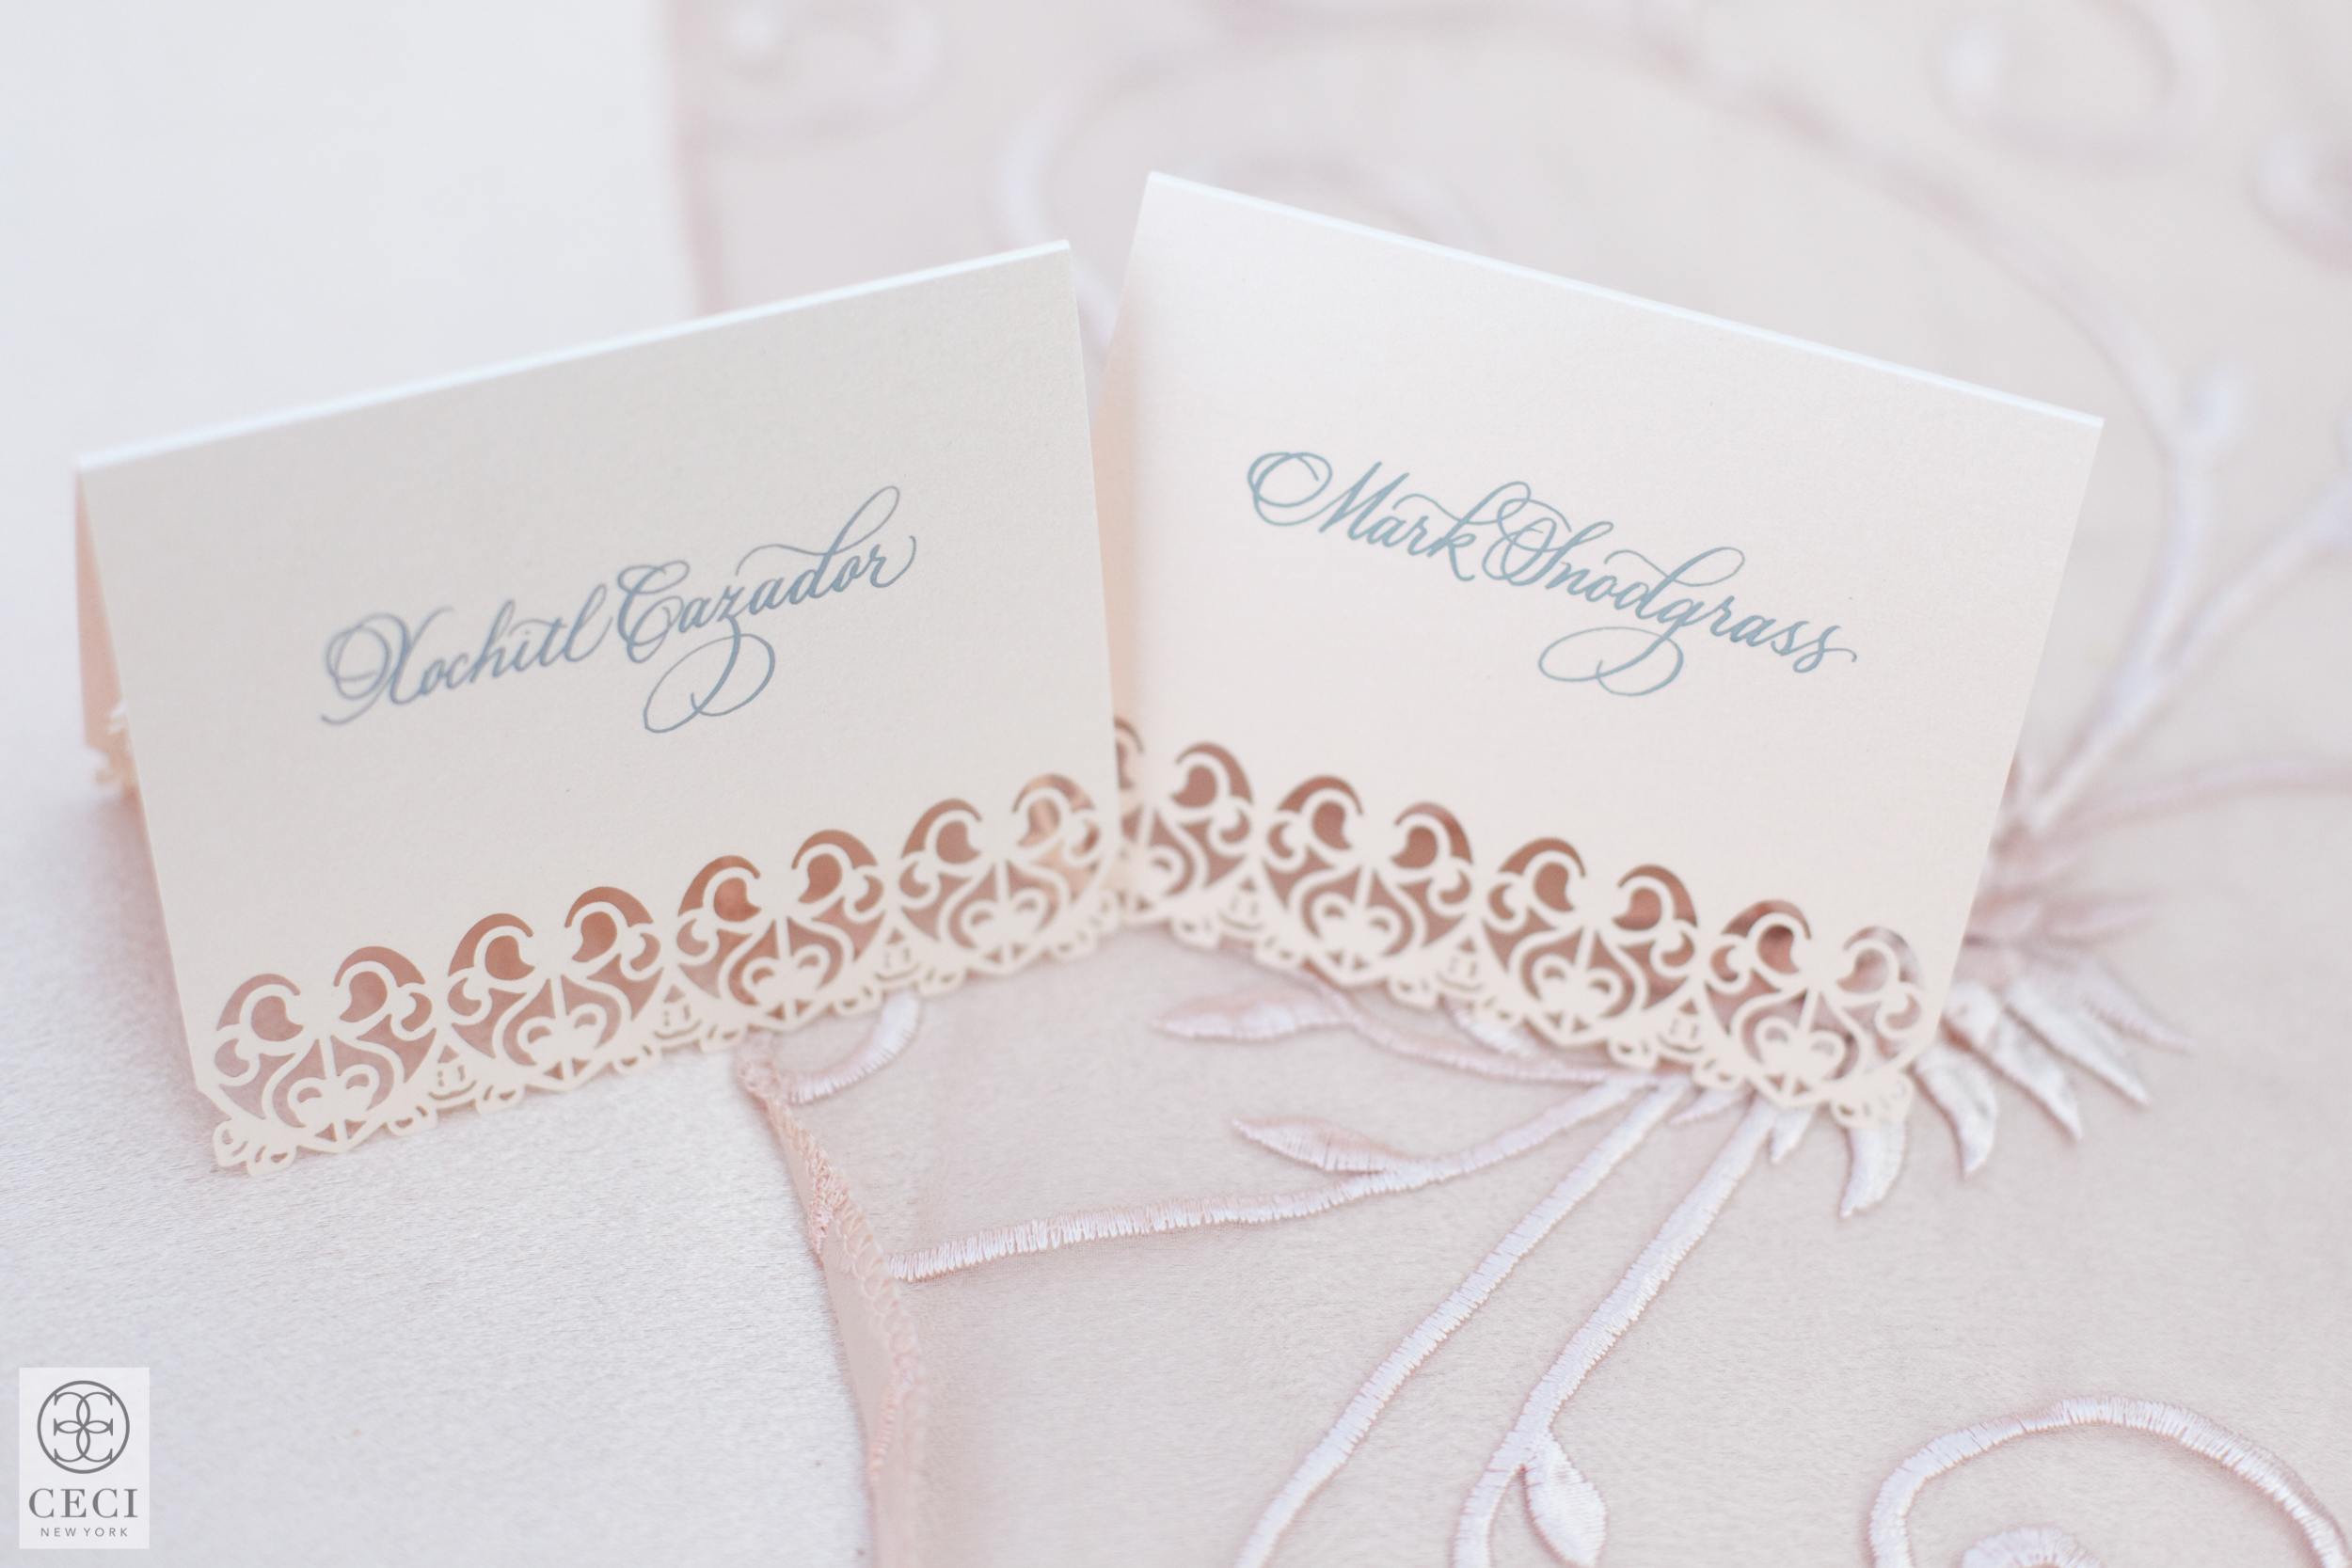 Ceci_New_York_Custom_Luxury_Wedding_LaserCut_Stationery_Personalized_Couture_Foil_Stamping_Mexico_Otomi_Chic_-16.jpg